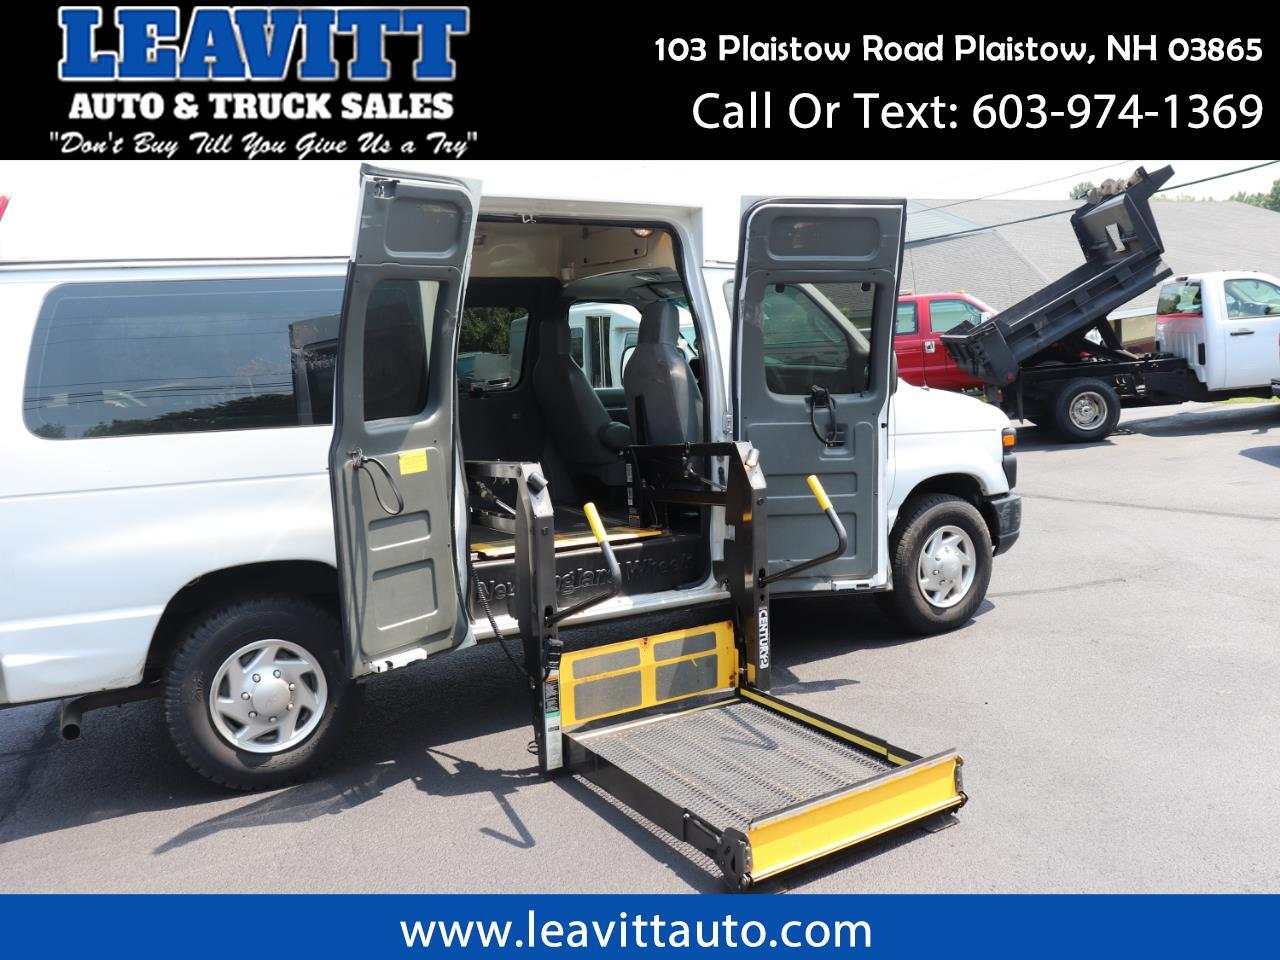 2009 Ford Econoline E-250 W/ HANDICAP LIFT